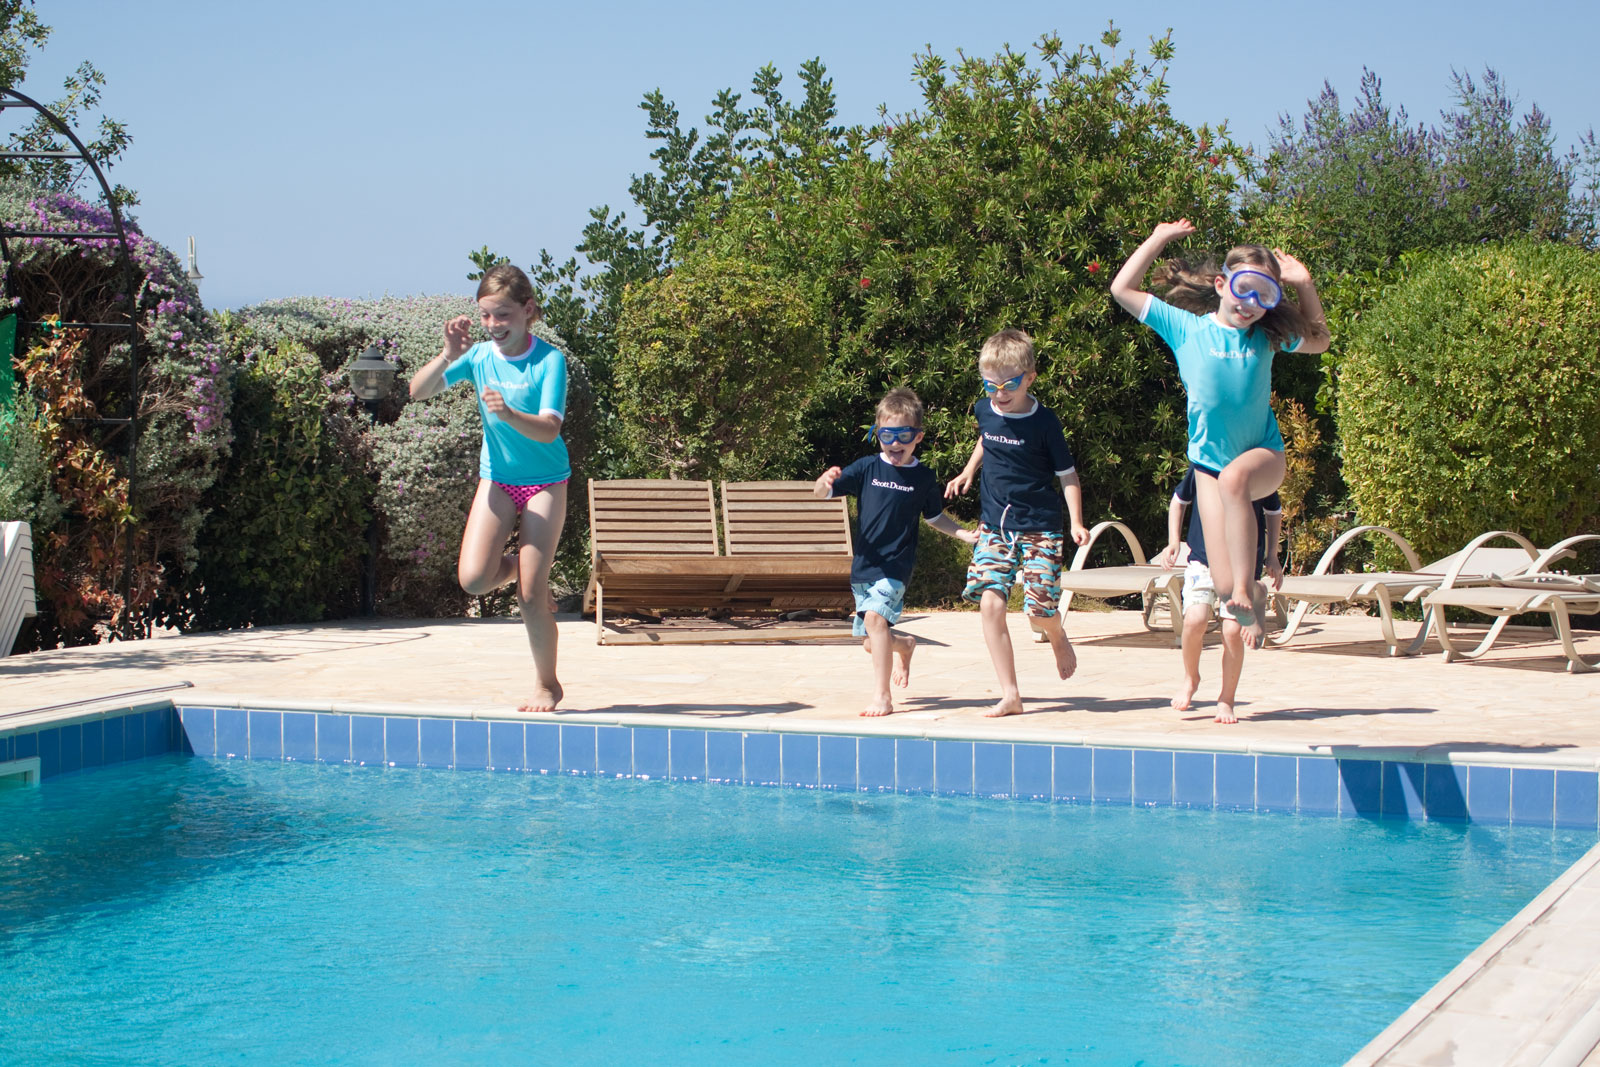 Scott-Dunn Cyprus Kids Jumping into pool happy